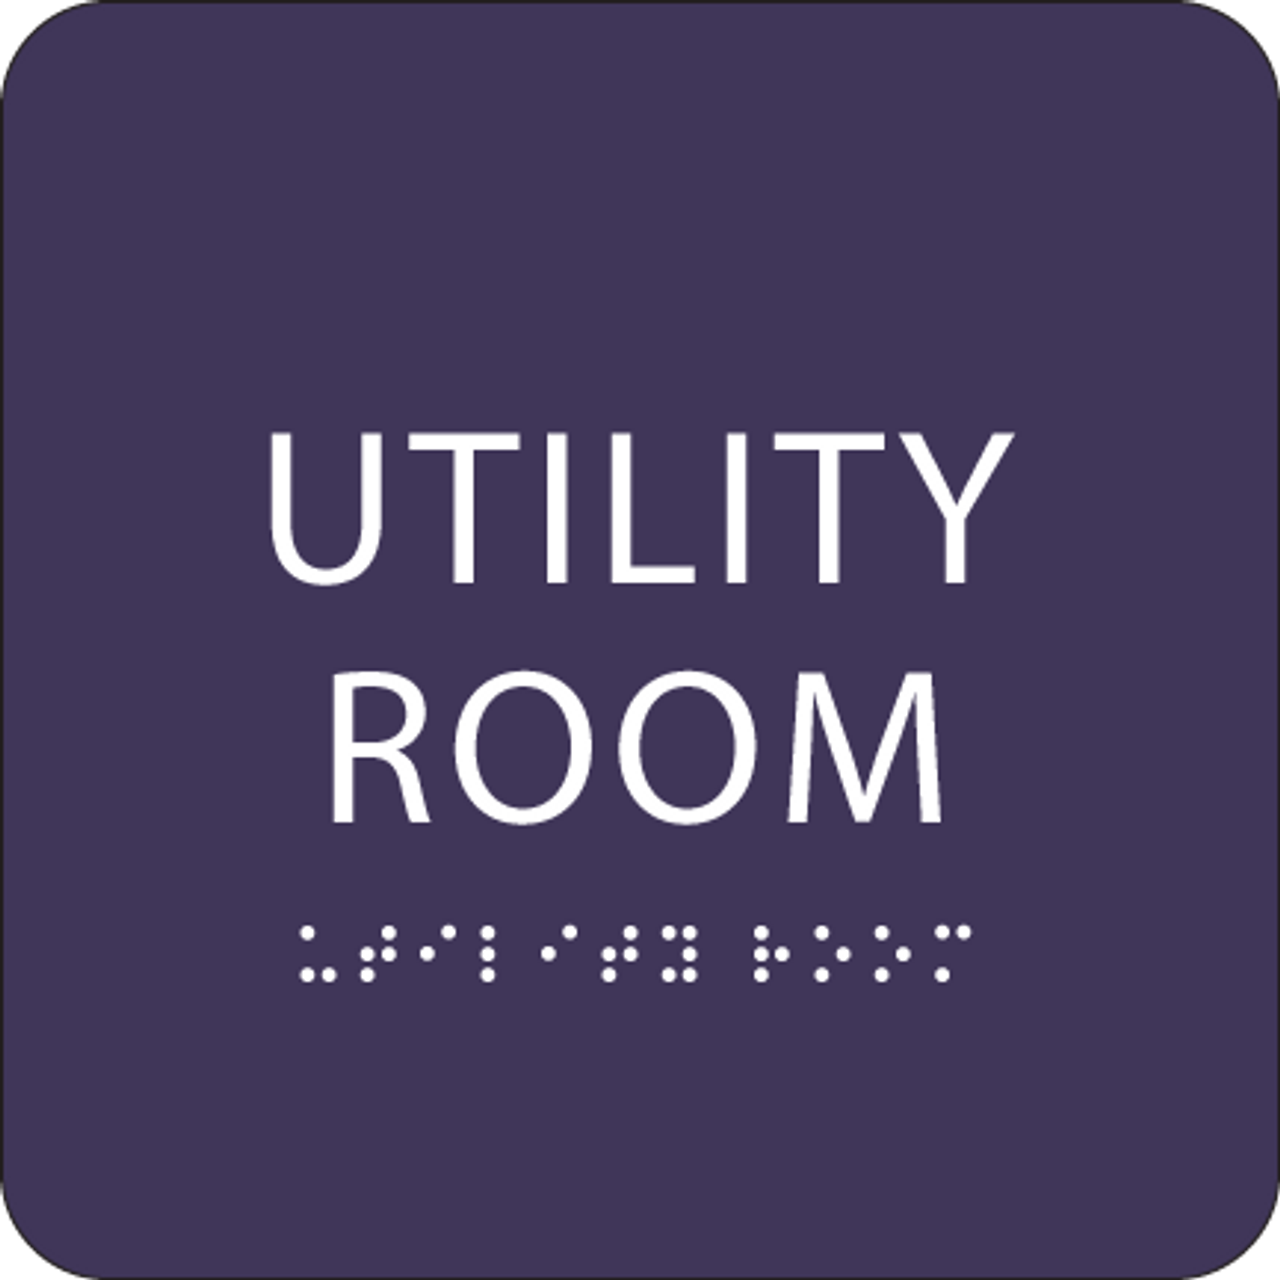 "Utility Room ADA Sign - 6"" x 6"""